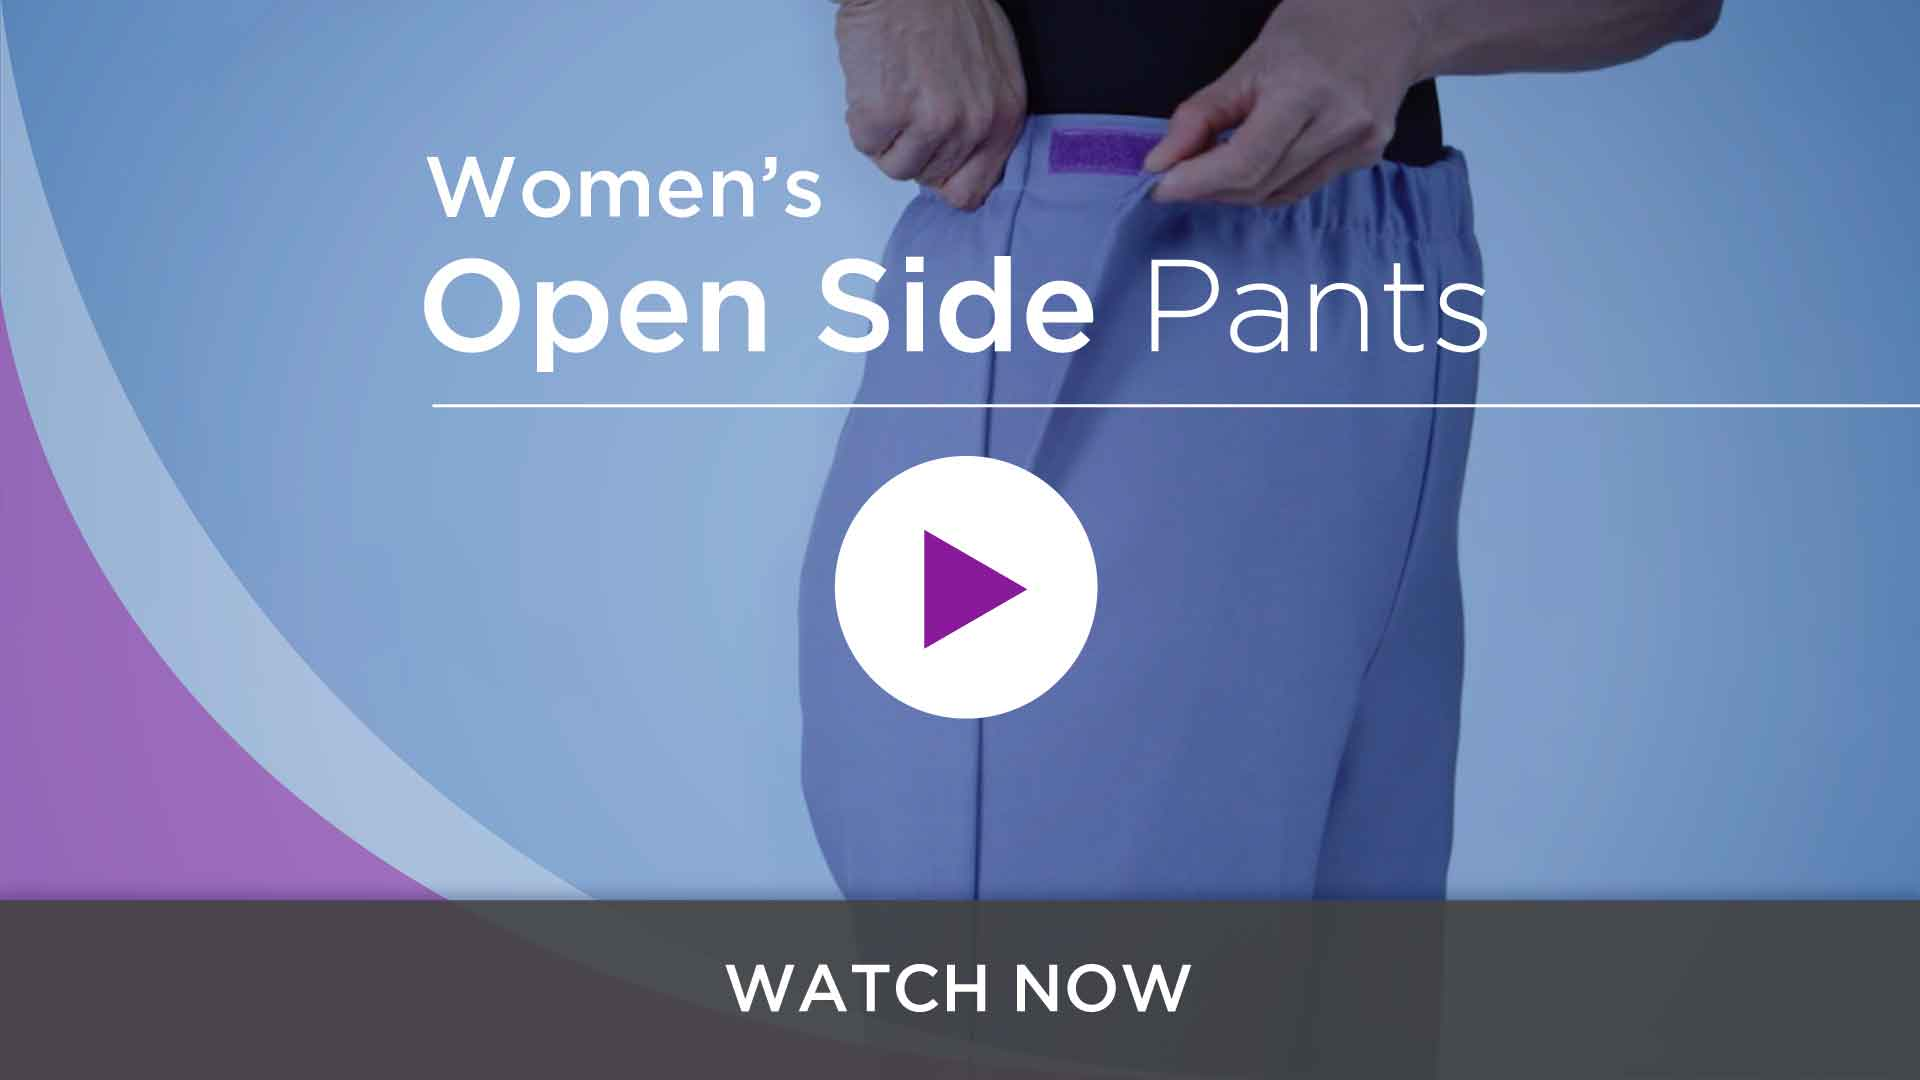 Women's Open Side Pants